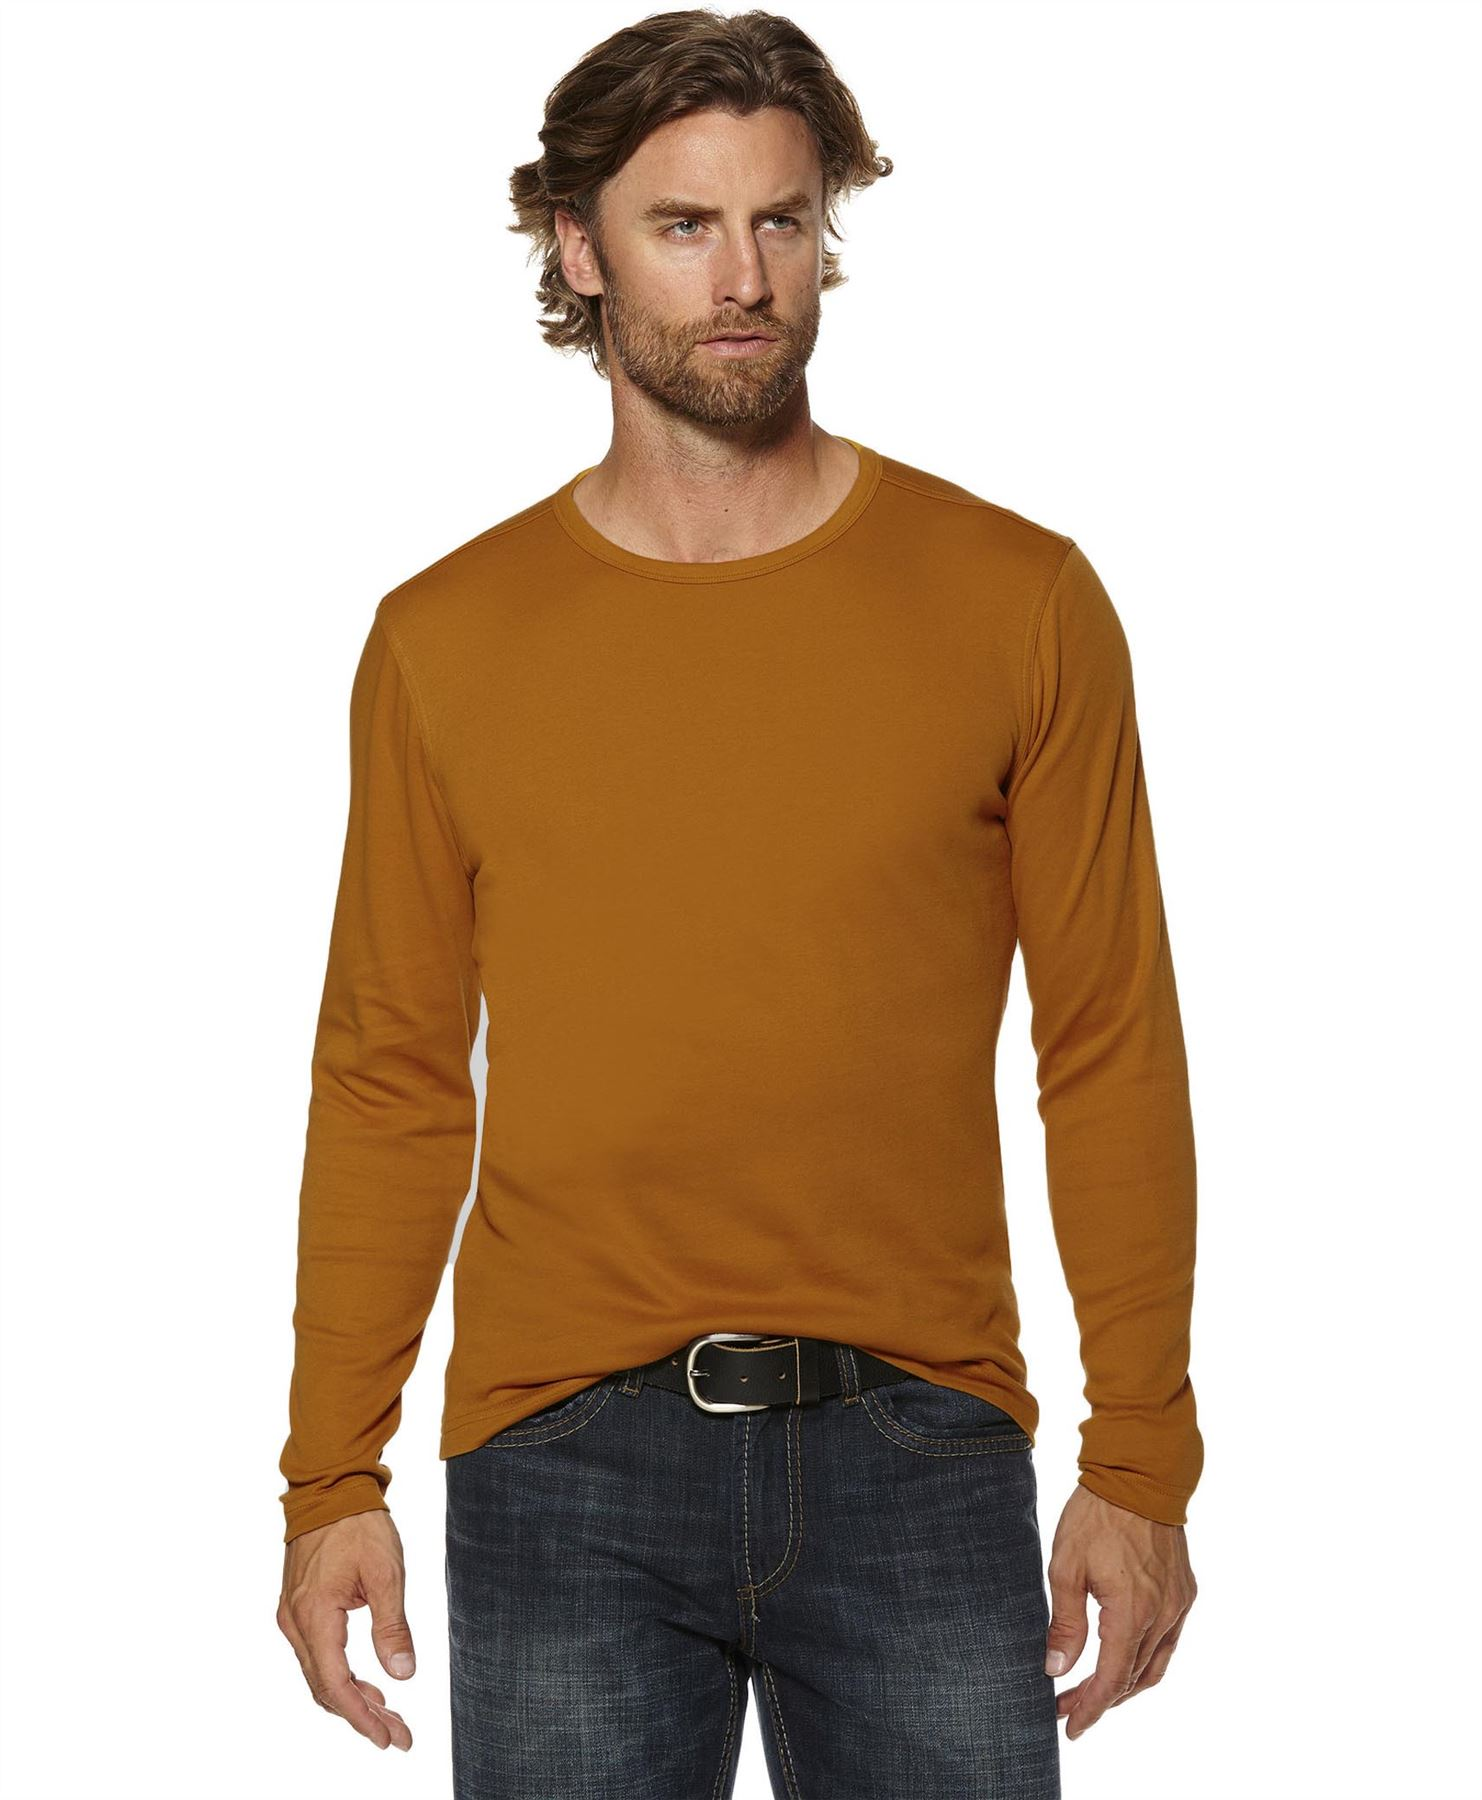 Men's Long Sleeve Tshirts. invalid category id. Men's Long Sleeve Tshirts. Showing 40 of results that match your query. Kingston Ontario Mens Long Sleeve Shirts. Product - LA Imprints T-shirts Tee Dip Me In Beer & Feed Me To Drunk Chicks - New - Black. Reduced Price. Product Image.